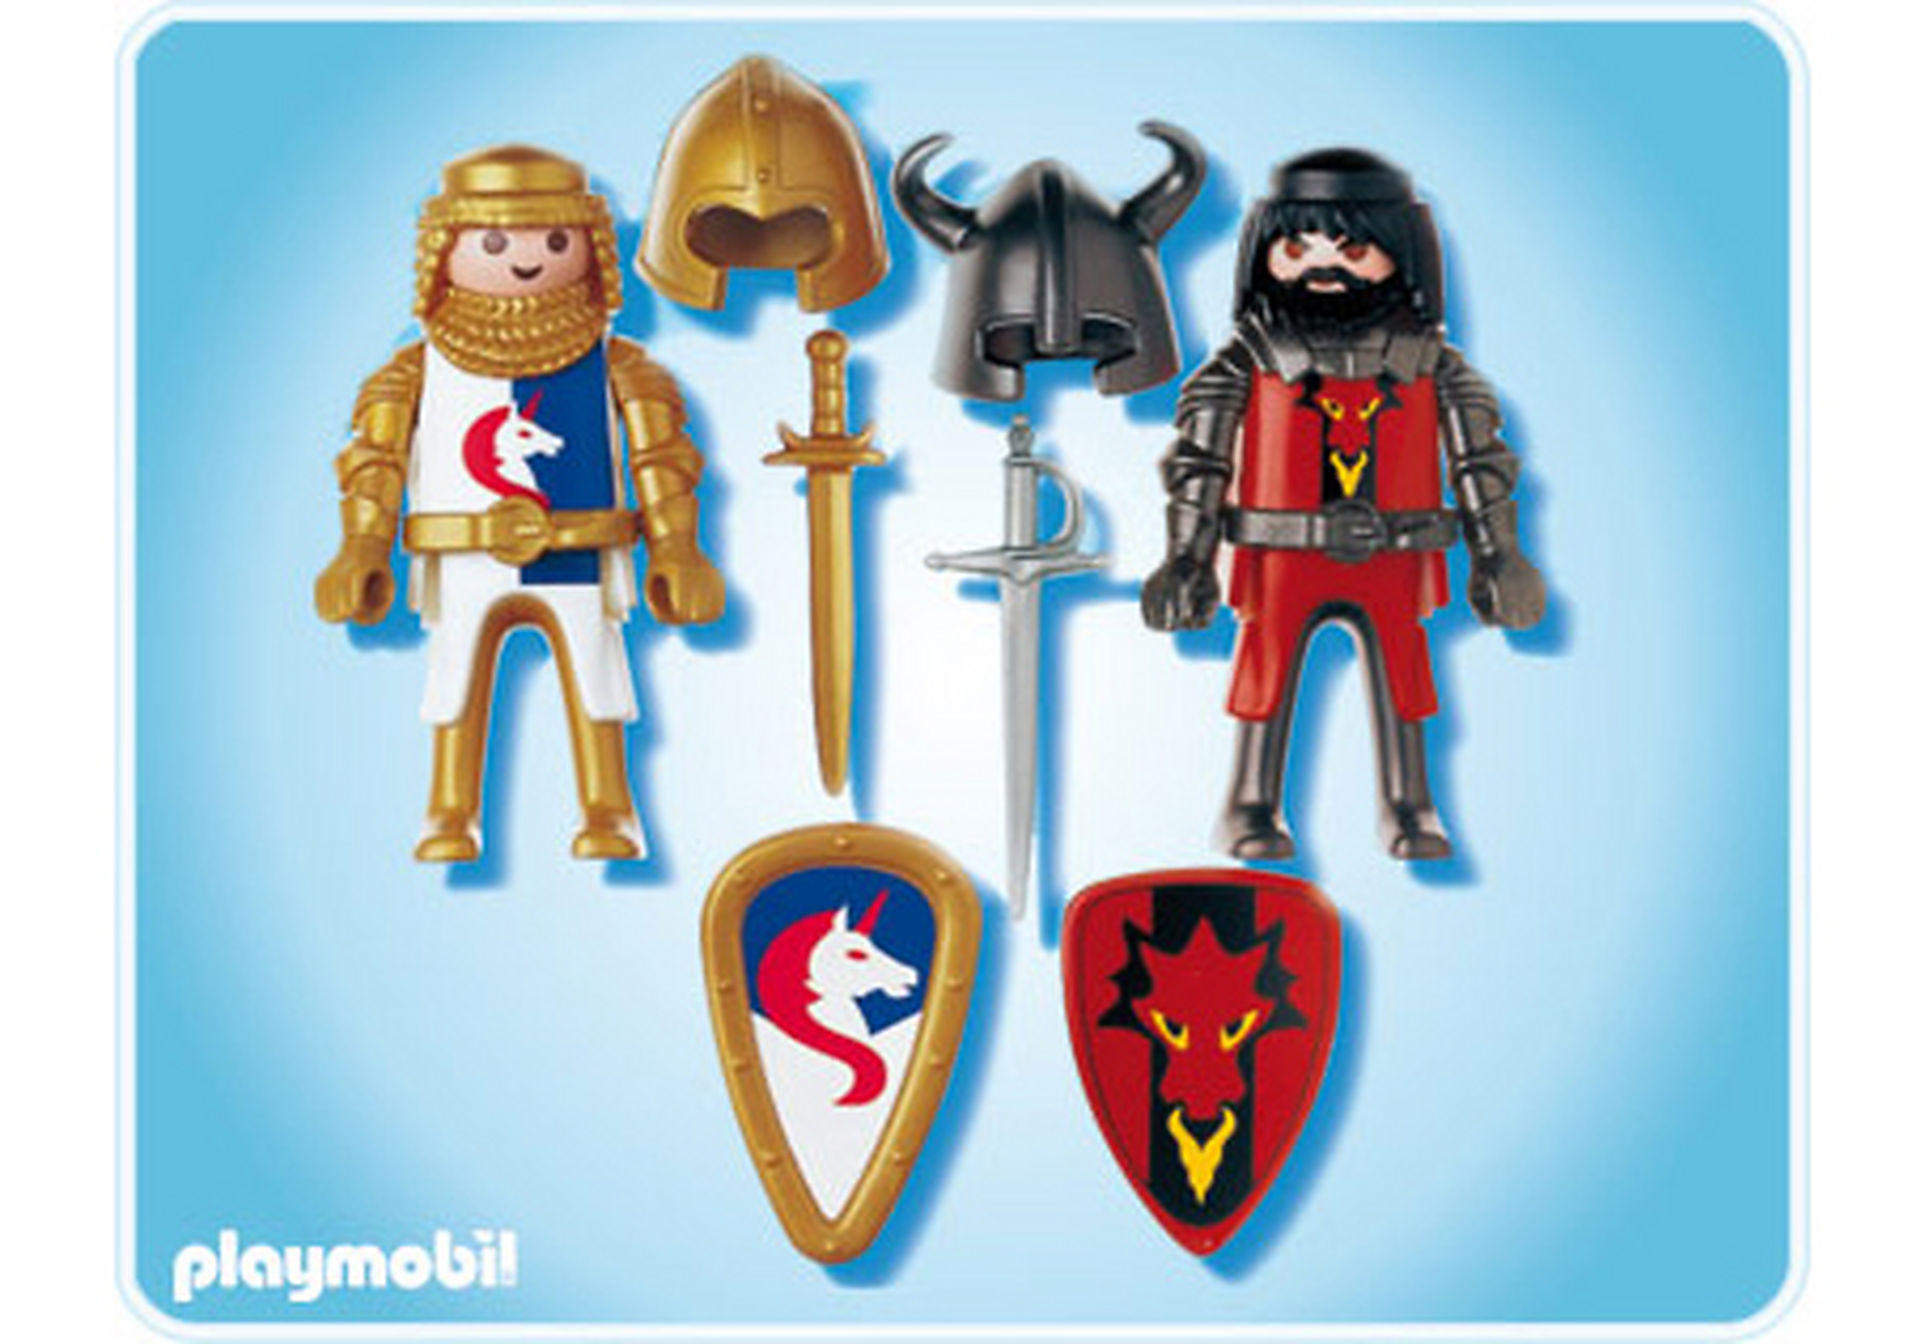 5815-A PLAYMOBIL Duo Chevalier Dragon rouge et Chevalier Licorne zoom image2